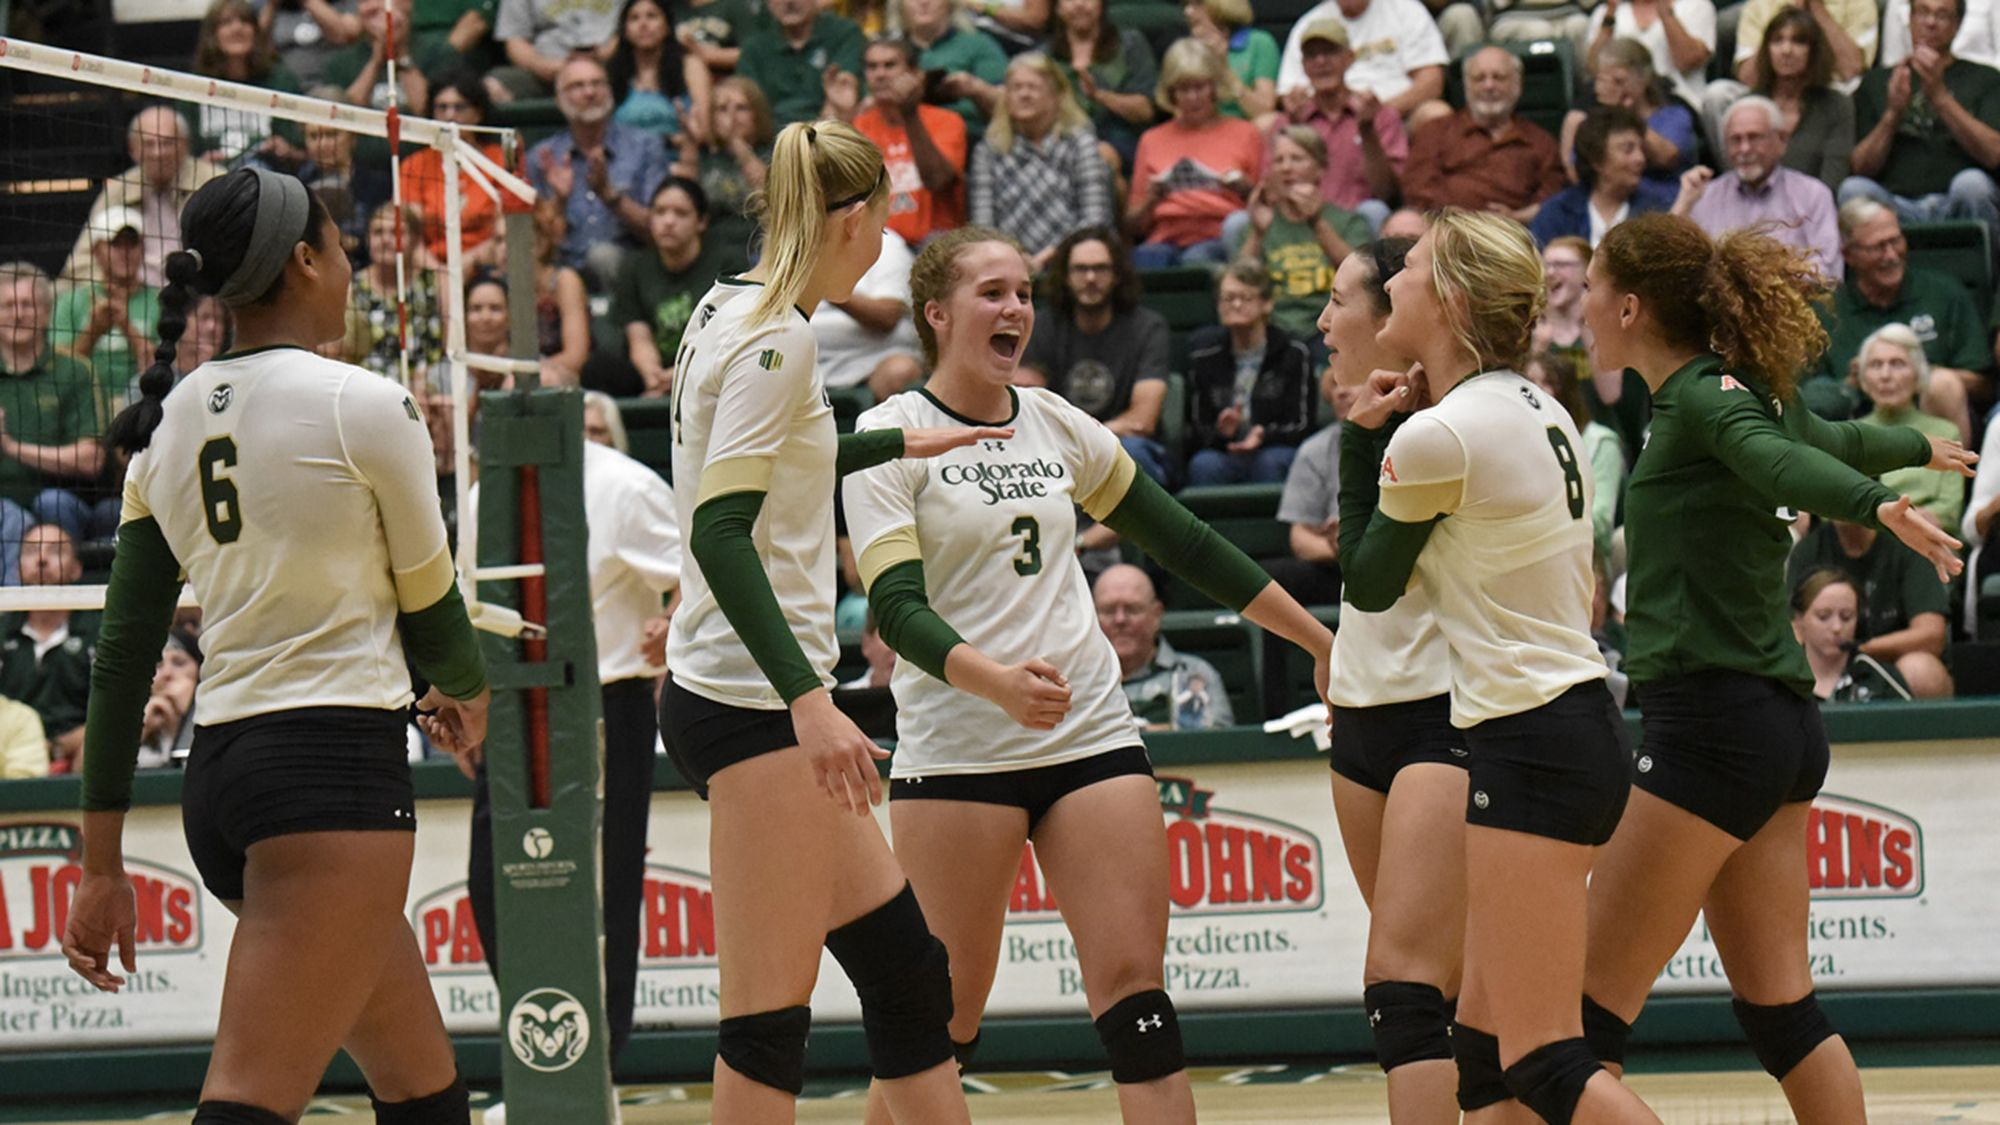 Csu Volleyball Awarded For Academic Excellence By Avca Colorado State University Volleyball Coaching Volleyball